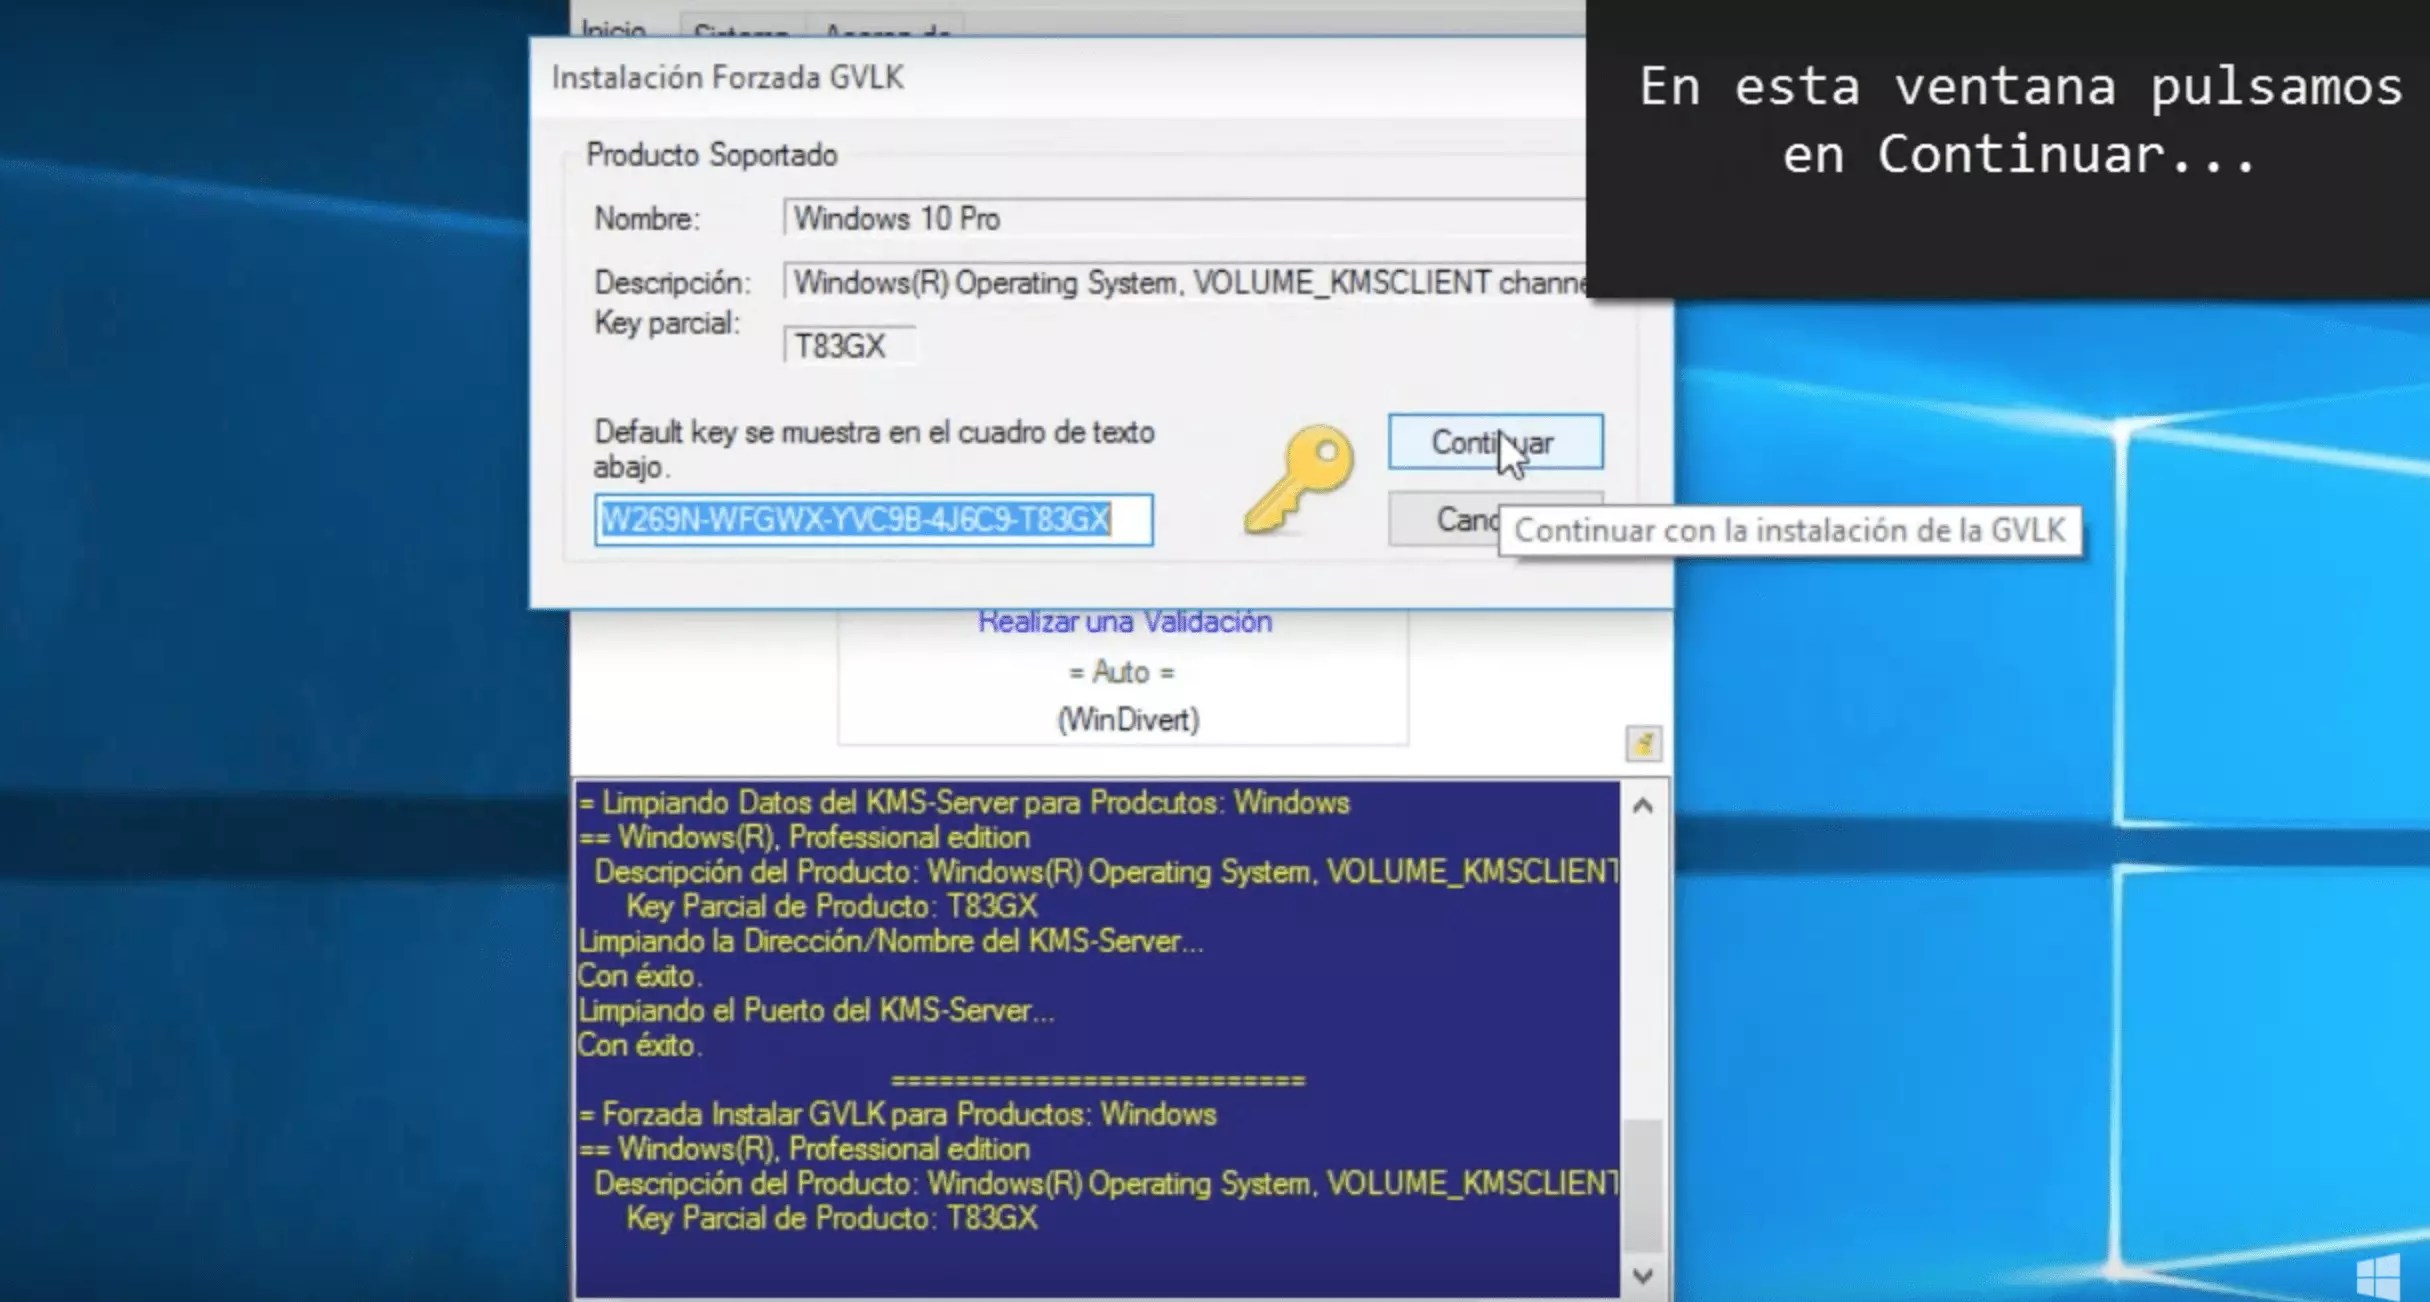 How to activate windows 8 windows 81 or windows 10 for life we recommend you how to install windows 95 on virtualbox complete guide ccuart Images